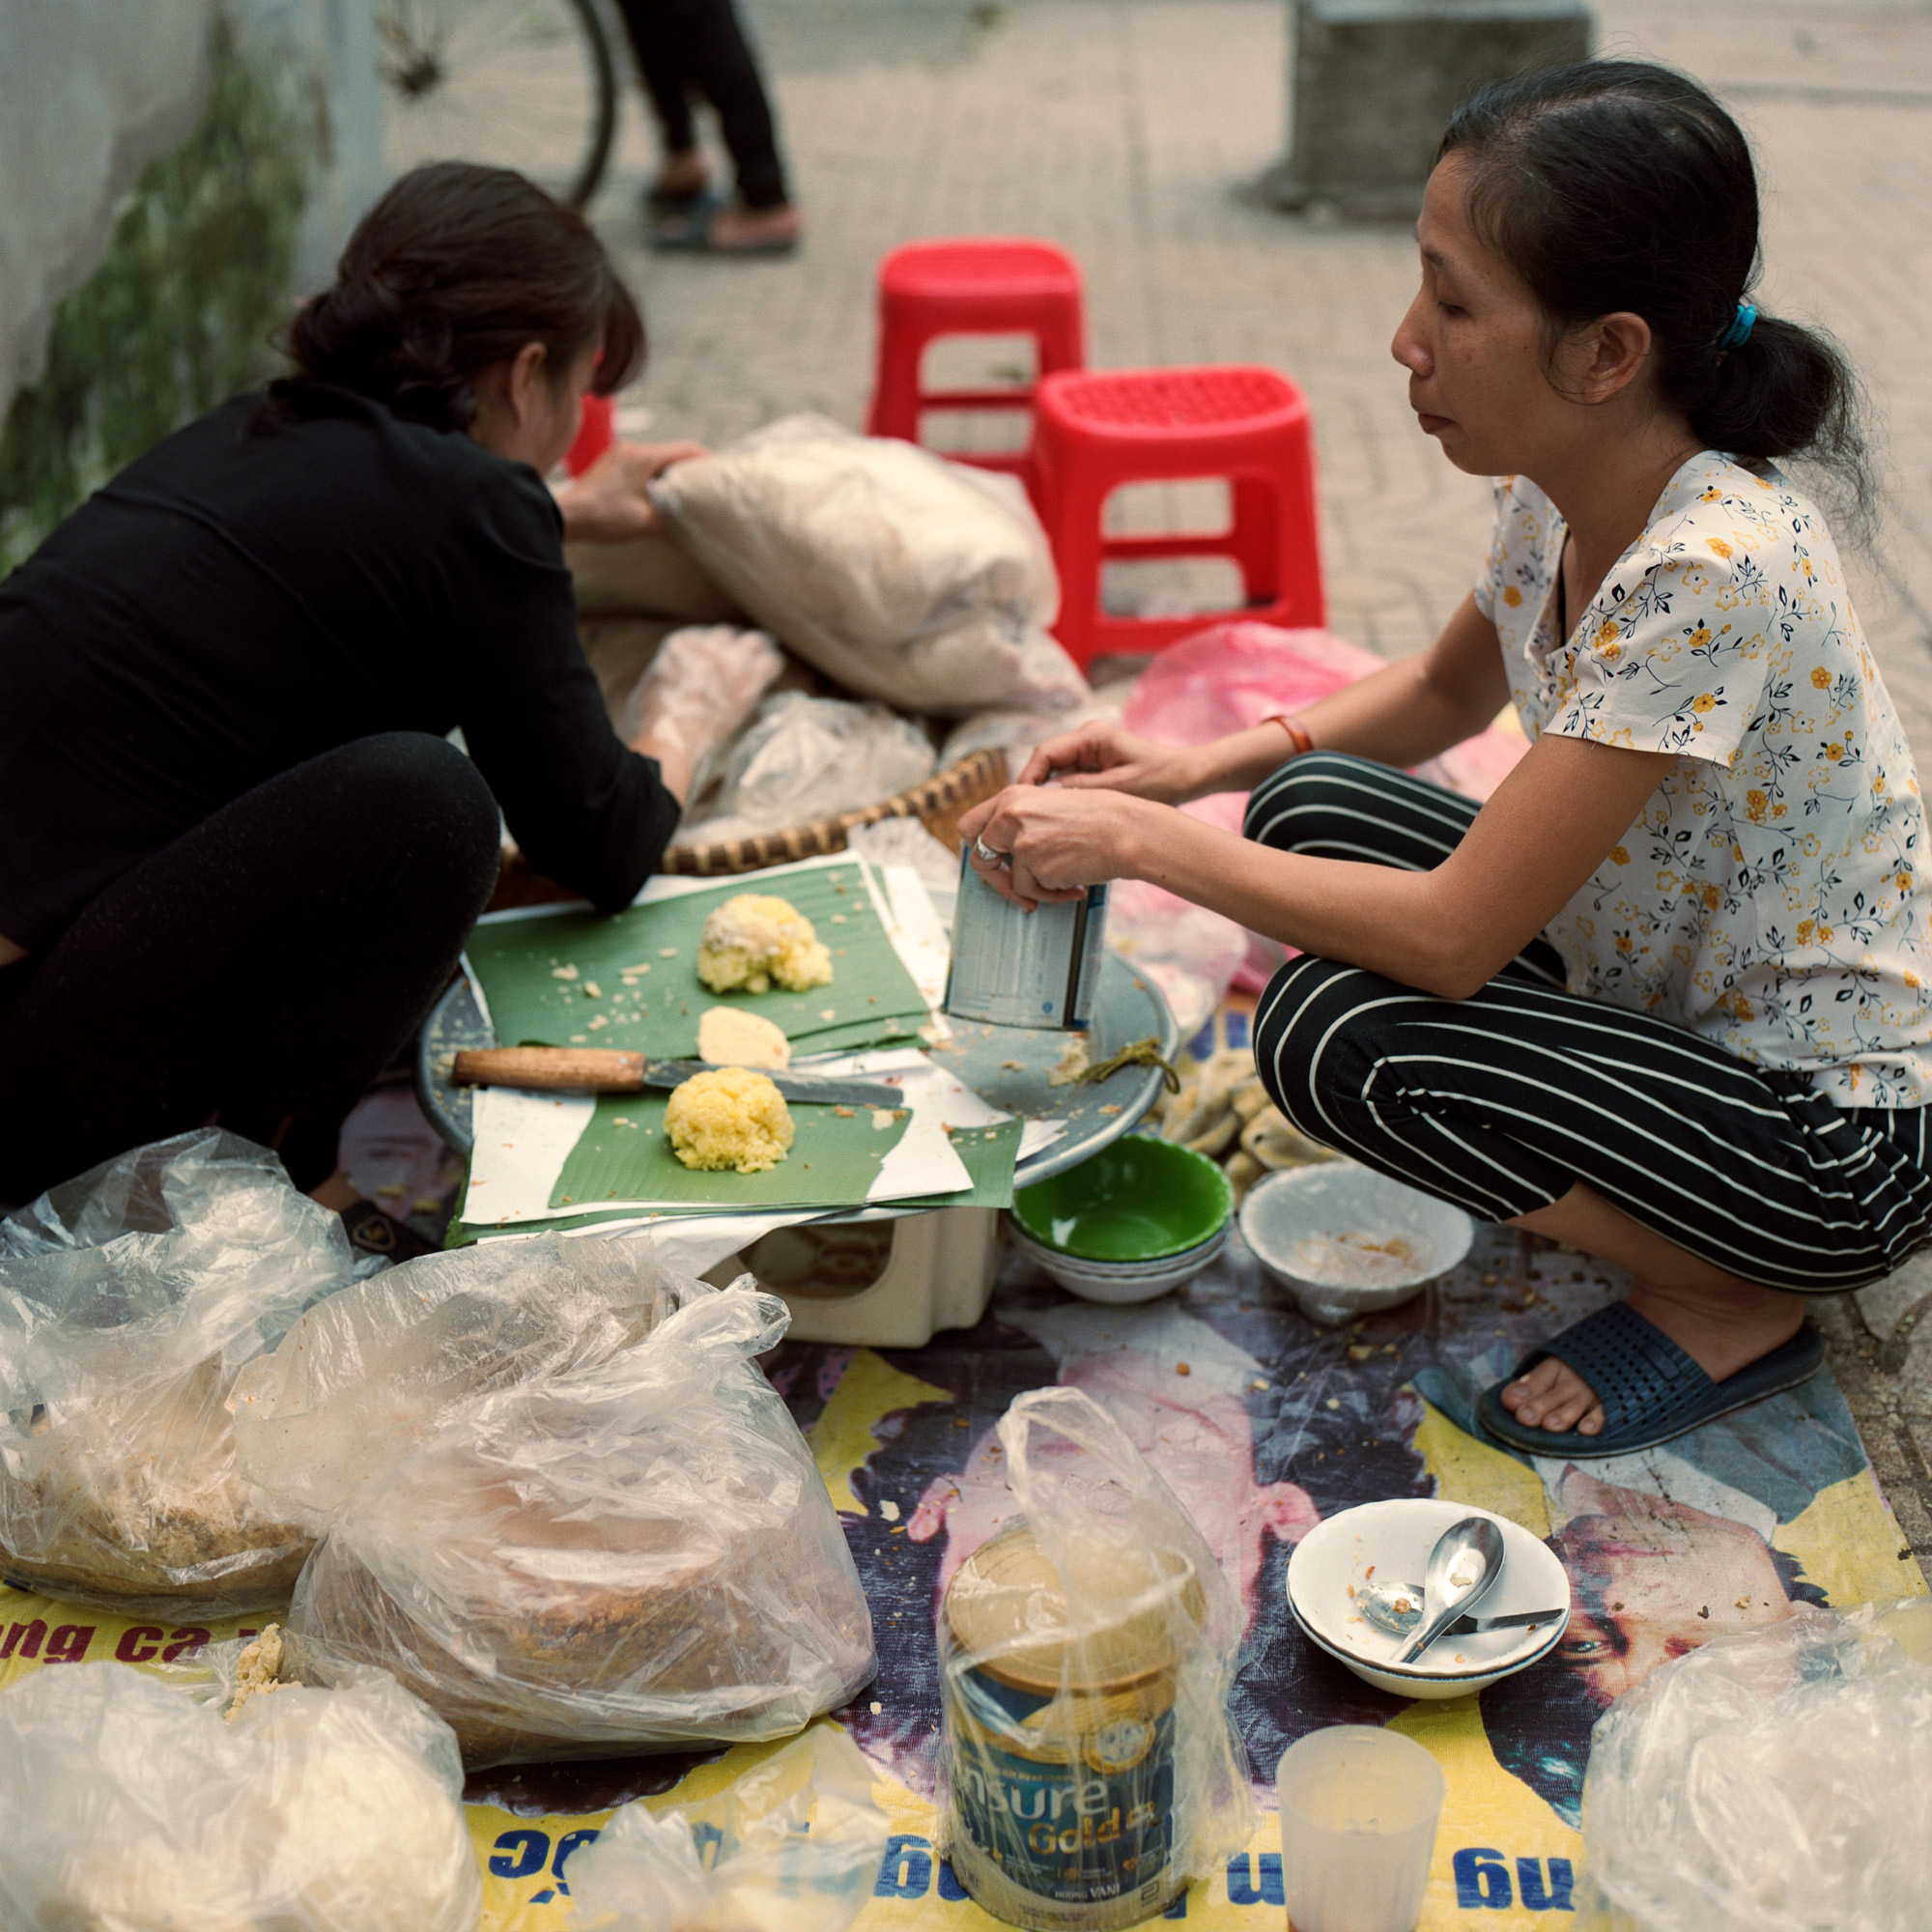 Woman vendors making breakfast at the side of the road in Hanoi Vietnam. Eastern Travels, Photography By Ioannis Koussertari